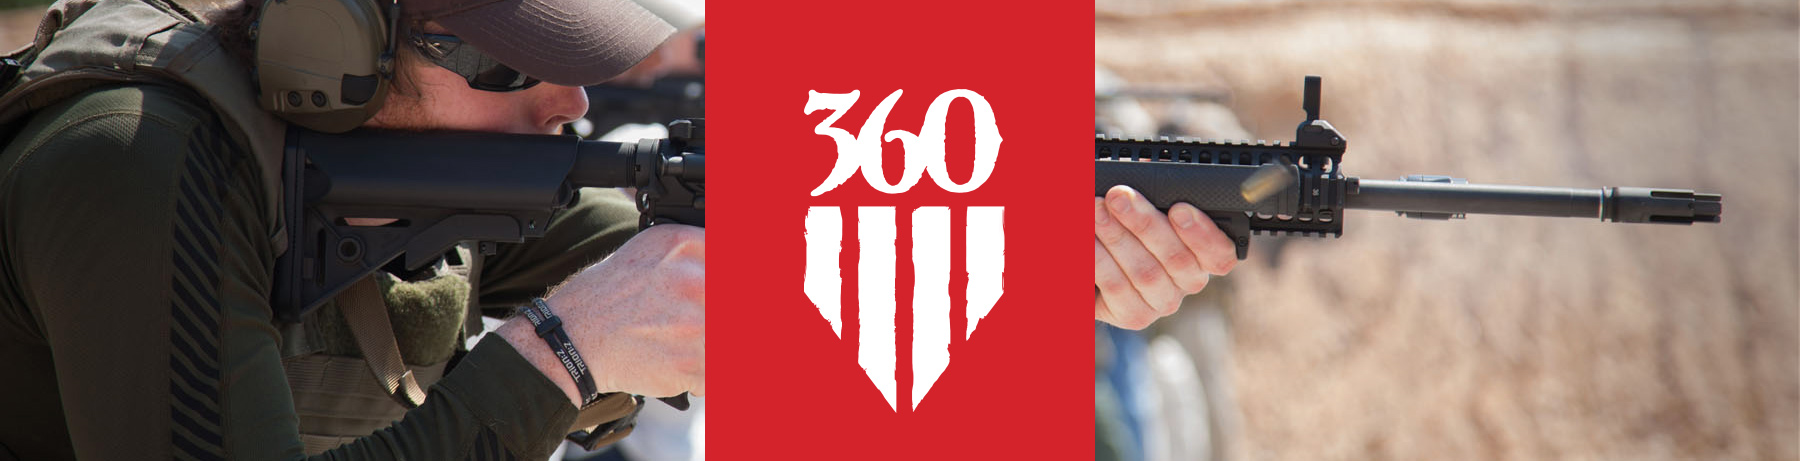 360 Tactical Training - Digital Marketing Agency Charlotte